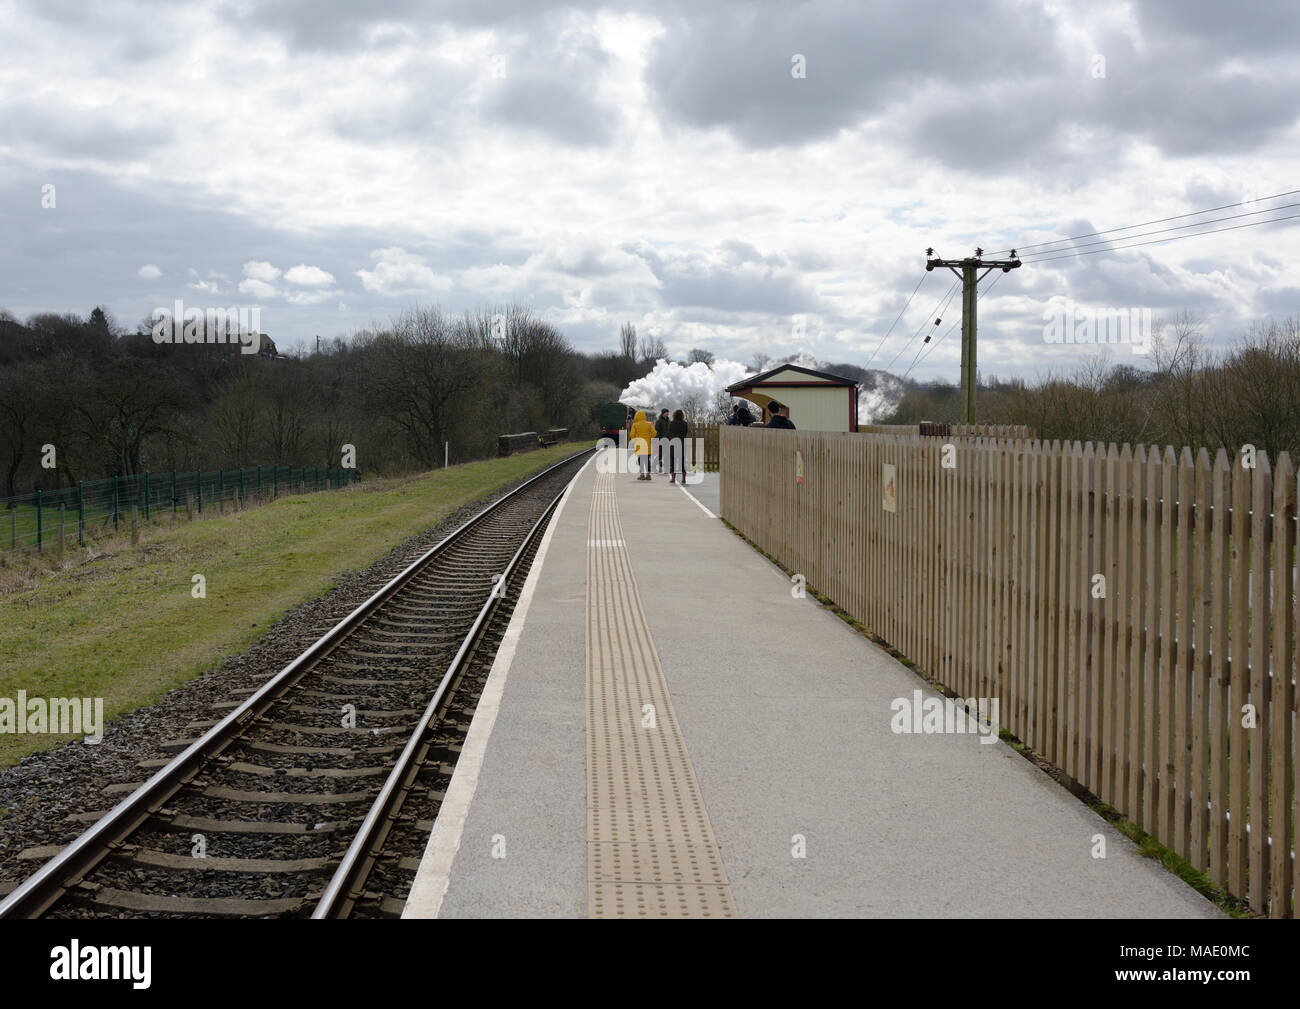 Steam train approaching platform with passengers waiting to board on the east lancashire railway Burrs country park station in Bury lancashire uk - Stock Image